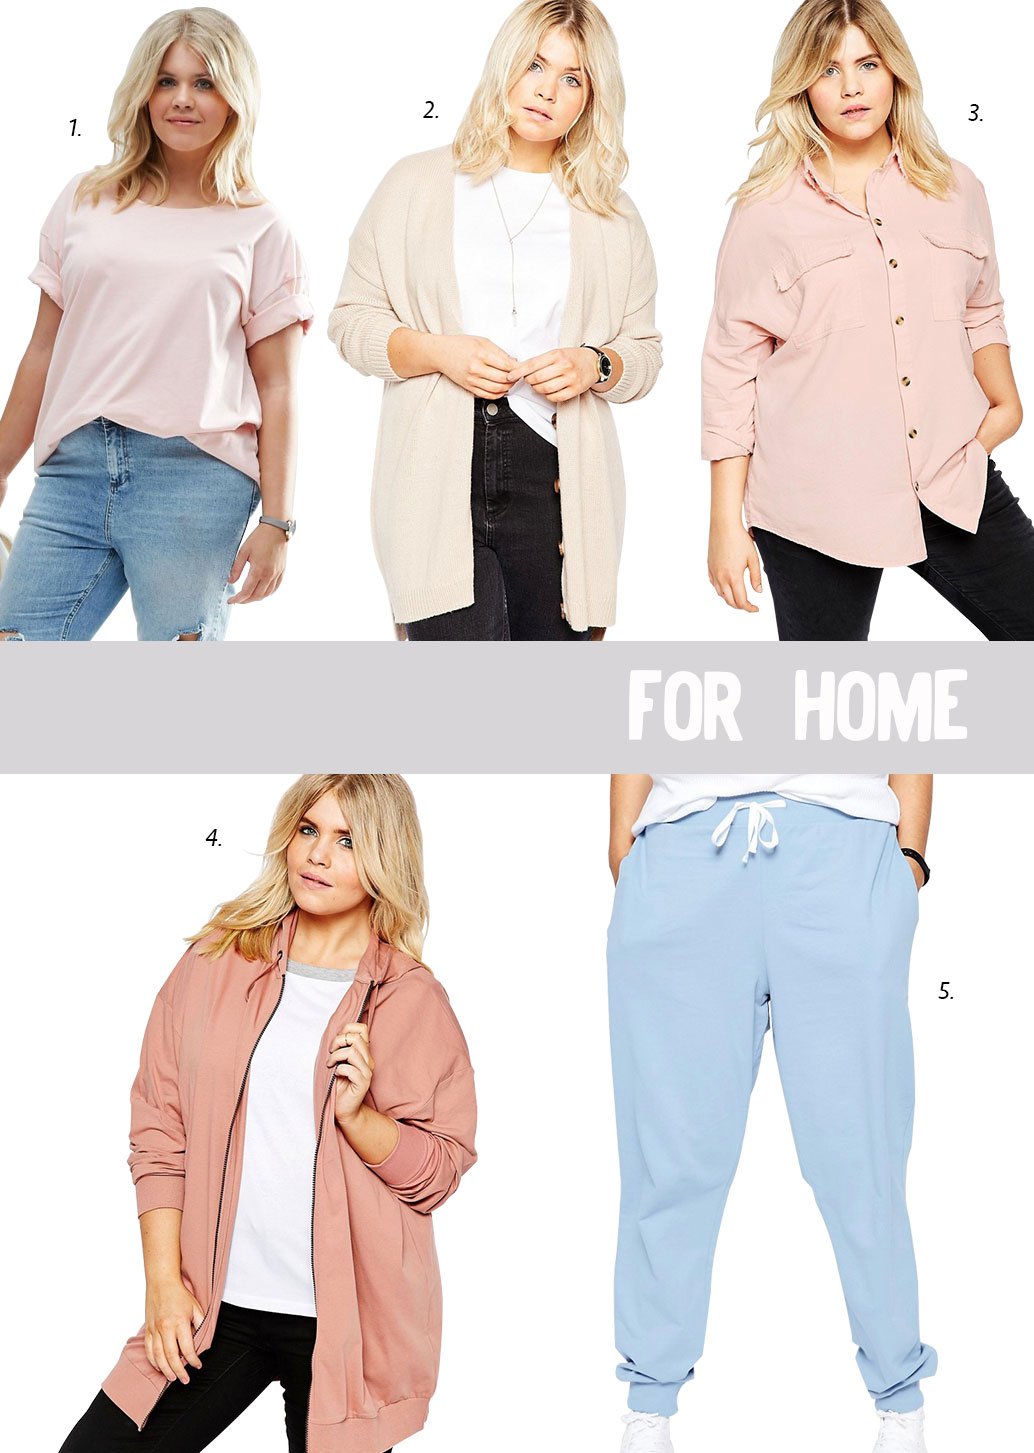 Winter Wardrobe Wishlist For Home | EmmaLouisa.com